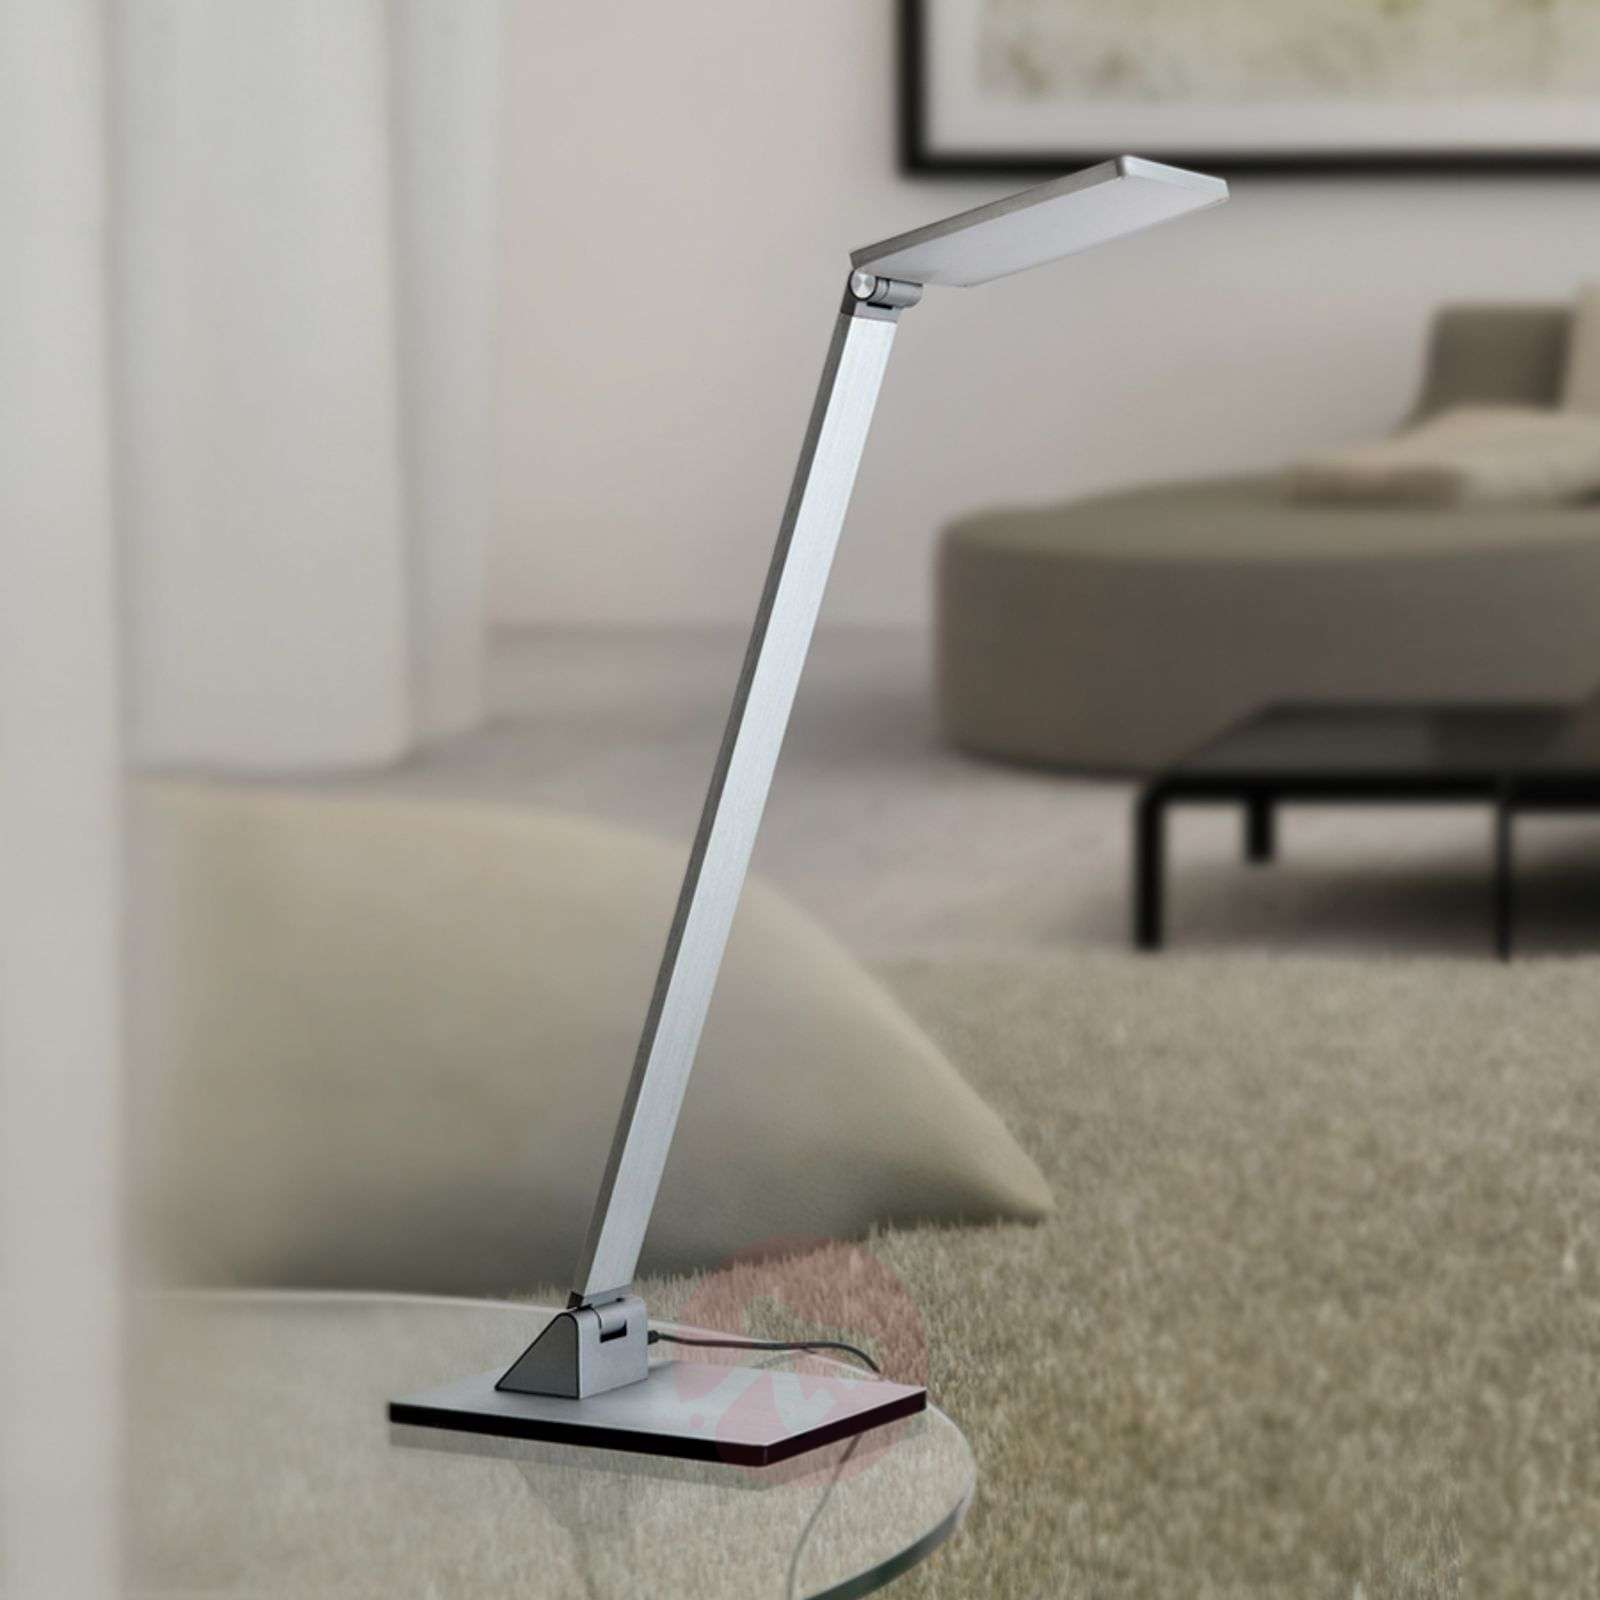 Lampe à poser LED Ayana, dimmable 4 niveaux-7255040-01